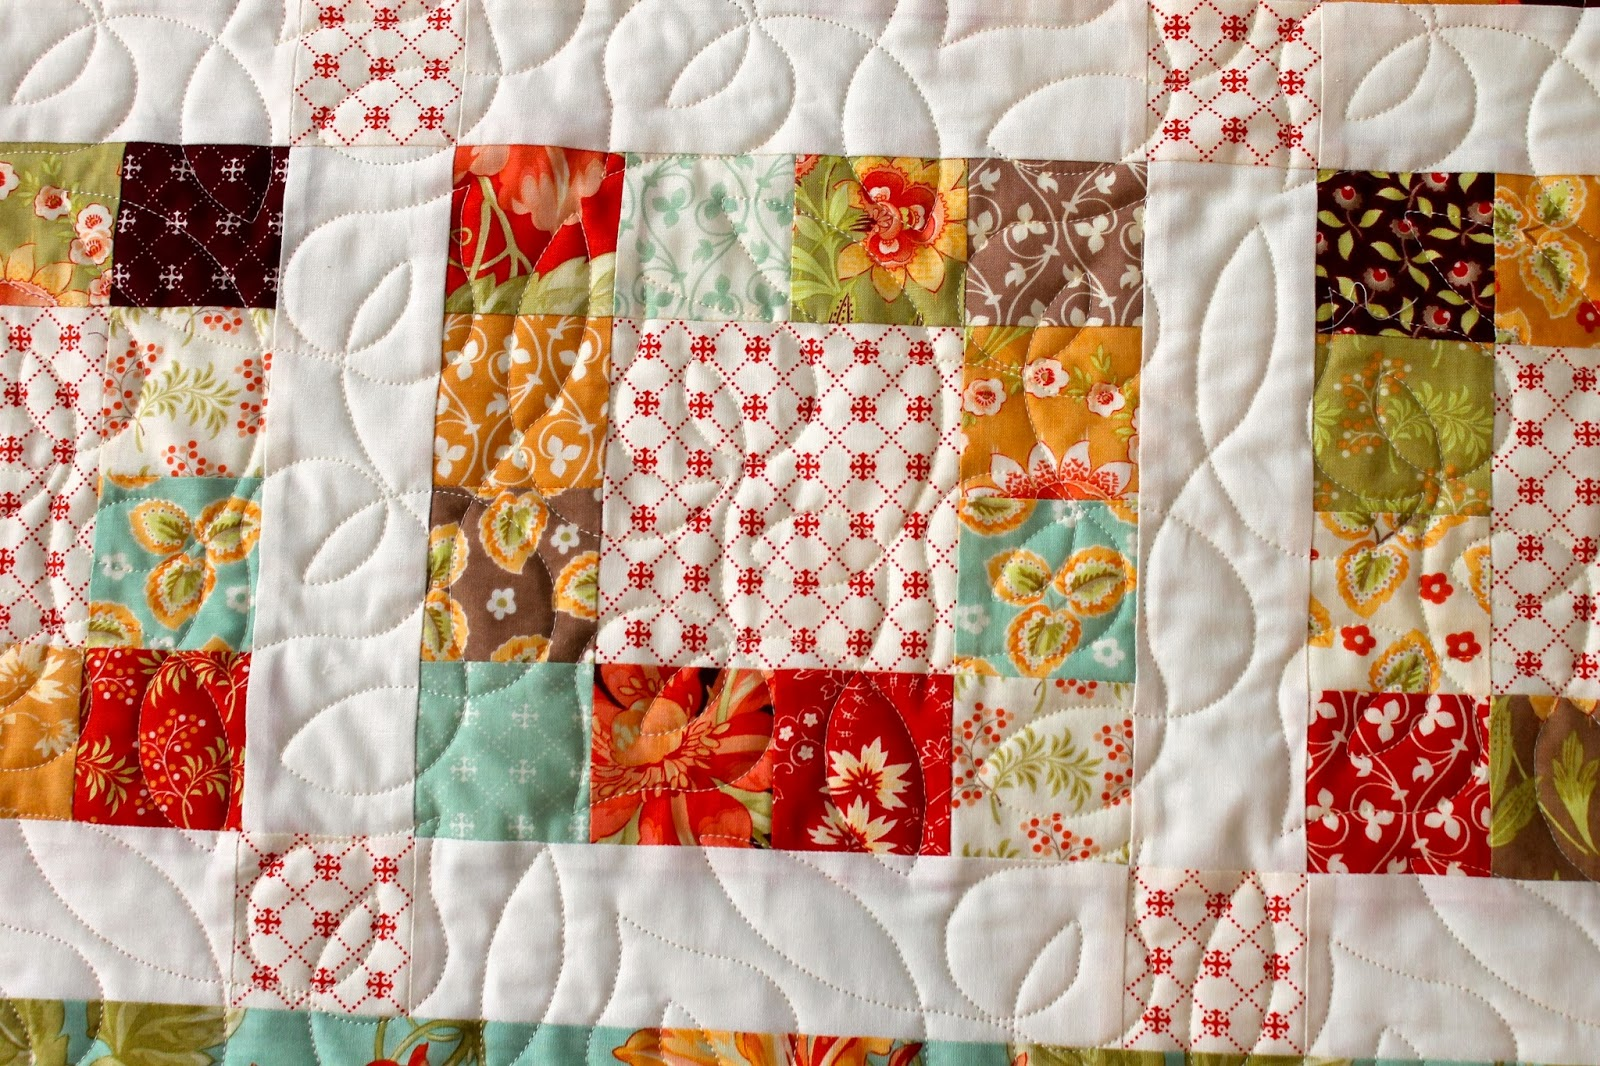 Trailing Vine Pattern on Quilt